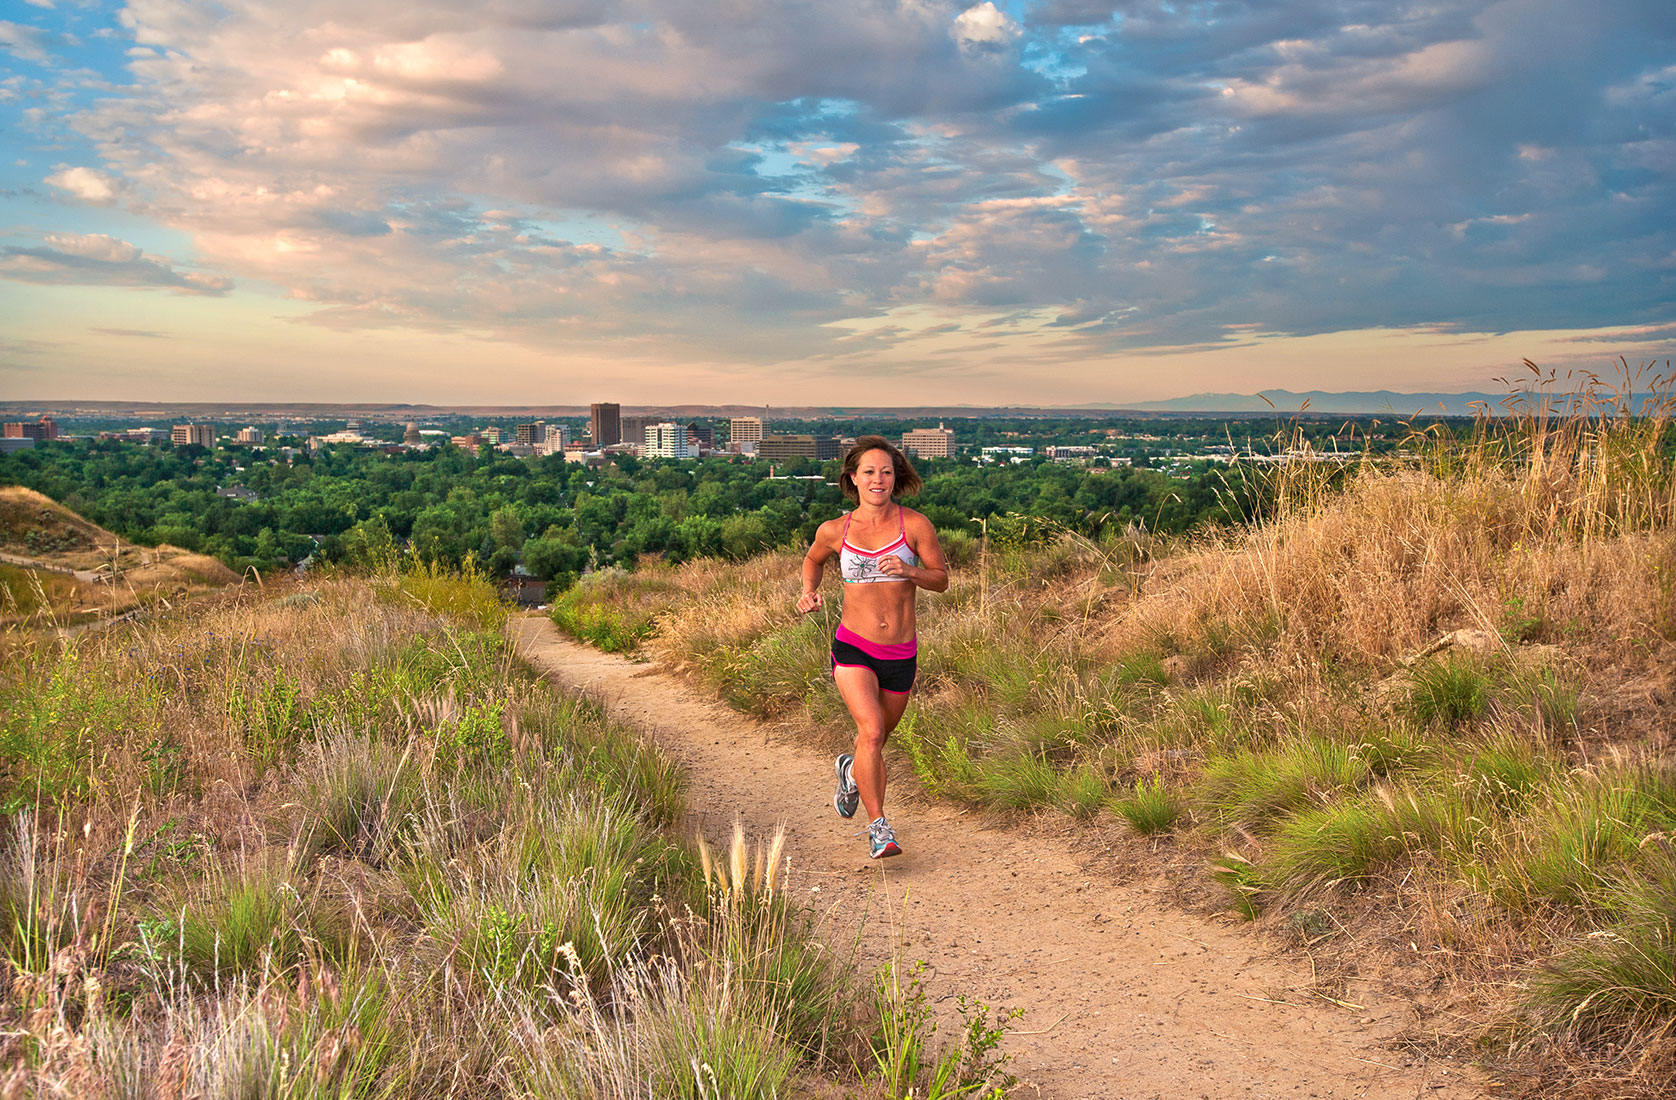 Woman_runner_Boise_Idaho_photographer.jpg